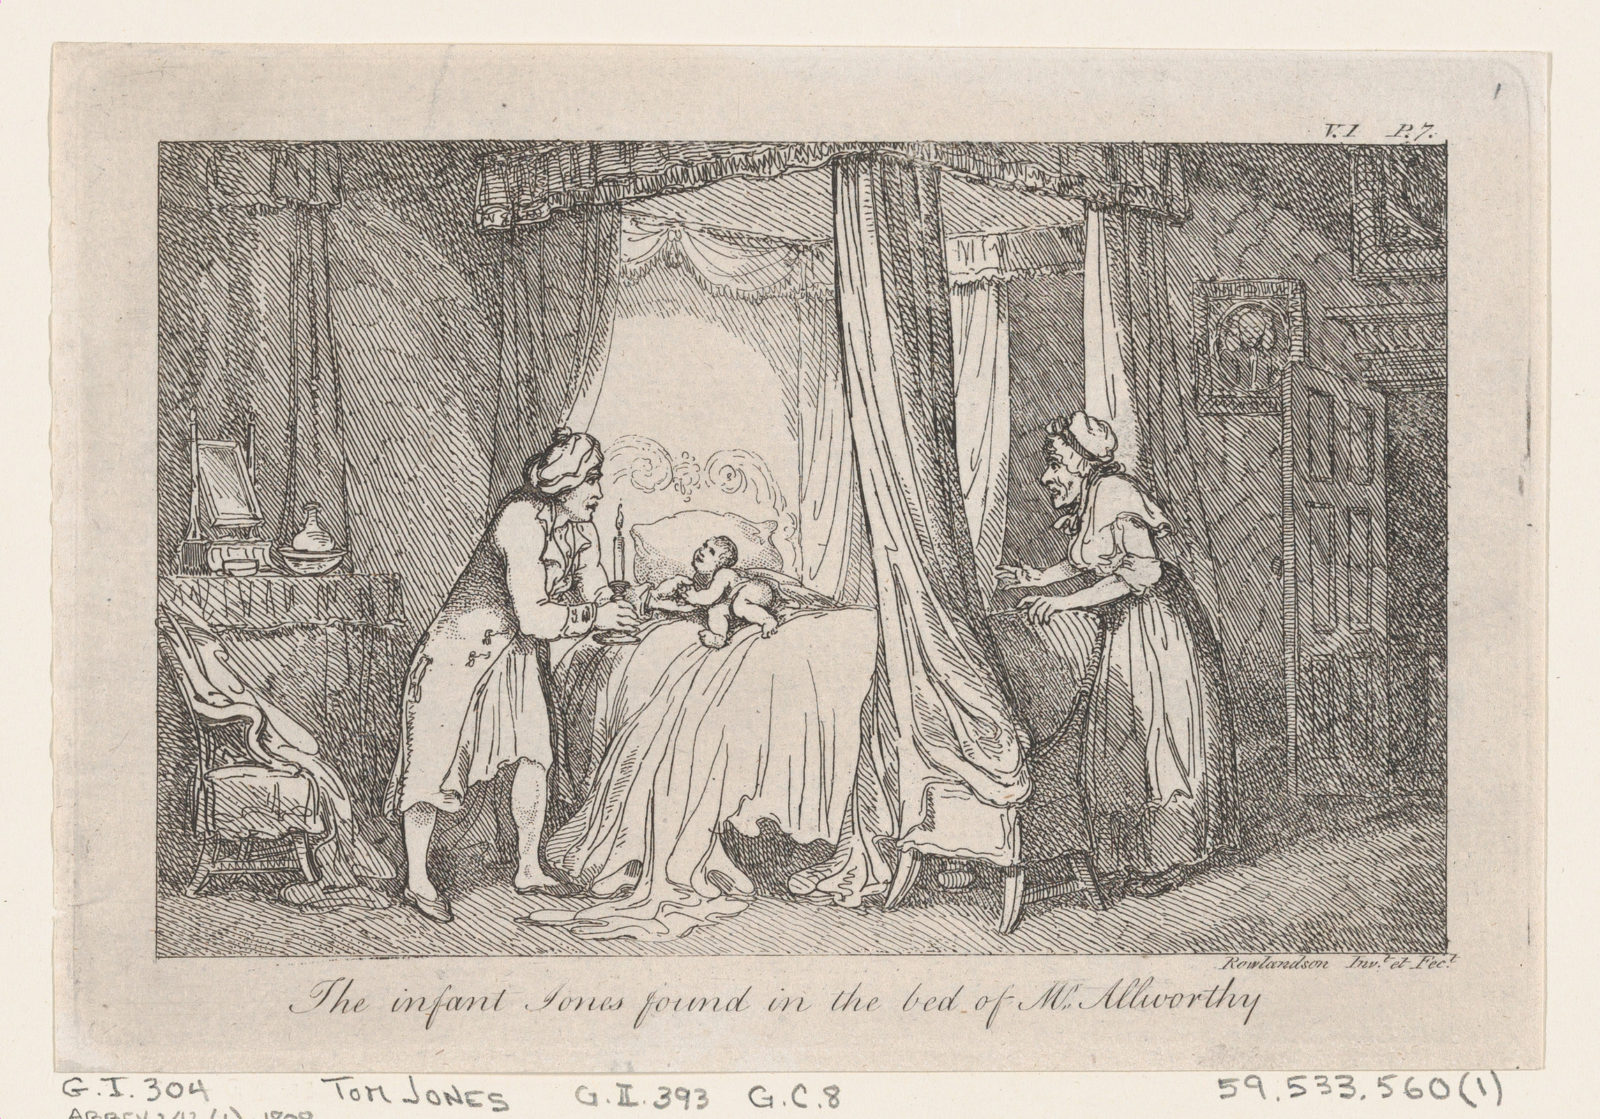 """The infant Jones found in the bed of Mr. Allworthy..., illustration to Henry Fielding's """"The History of Tom Jones, a Foundling"""" (Edinburgh, 1791), Vol. I (Book I, chapter 3)"""